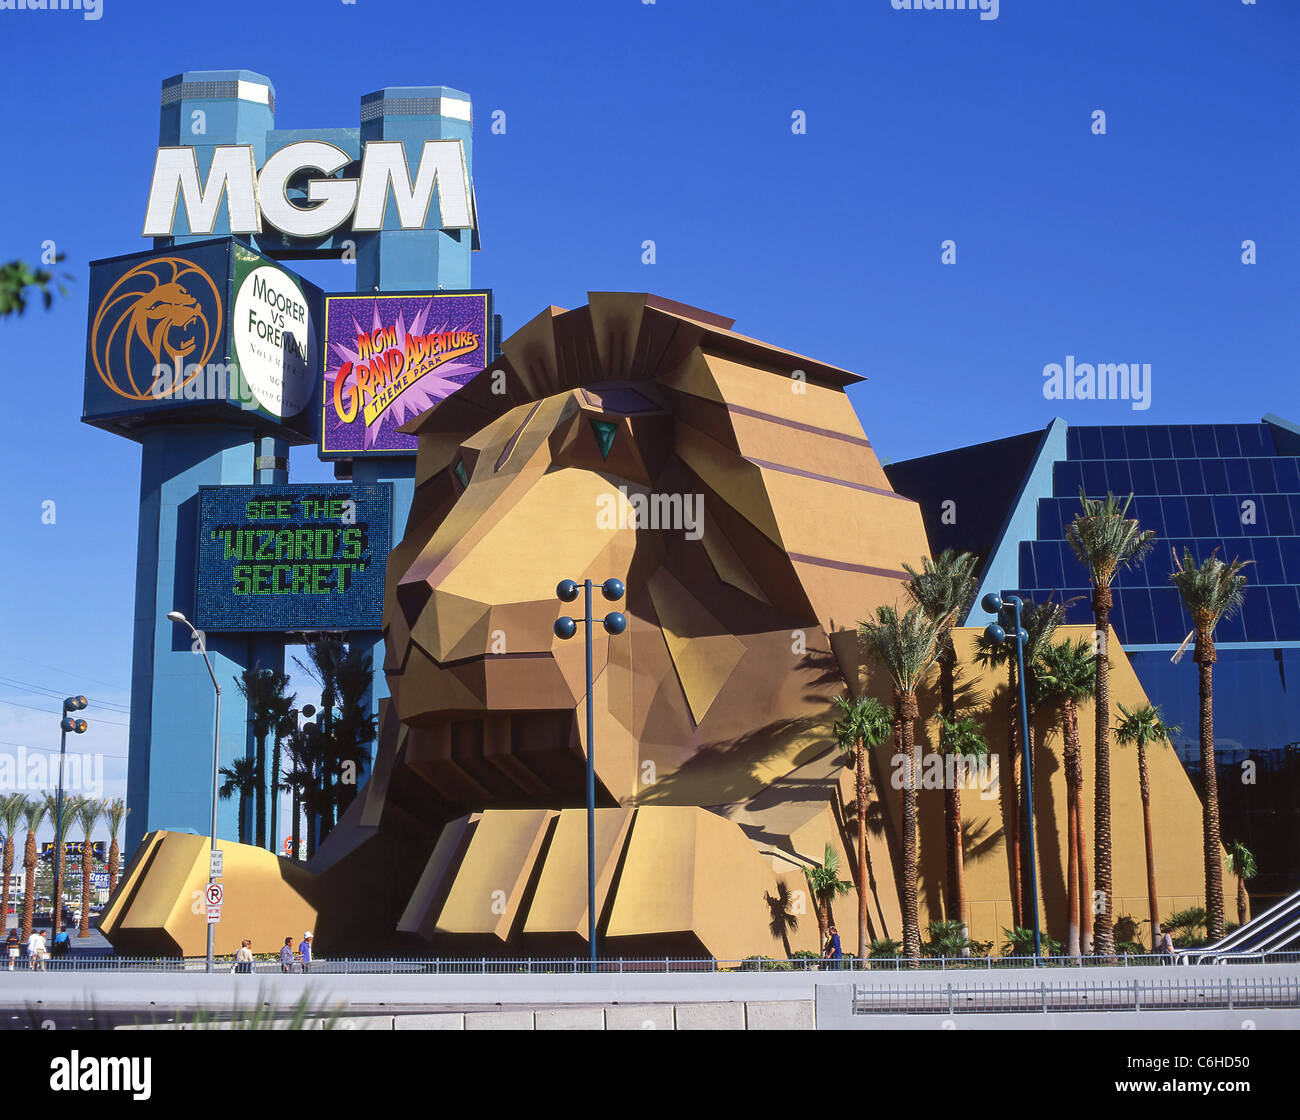 Mgm Hotels And Resorts